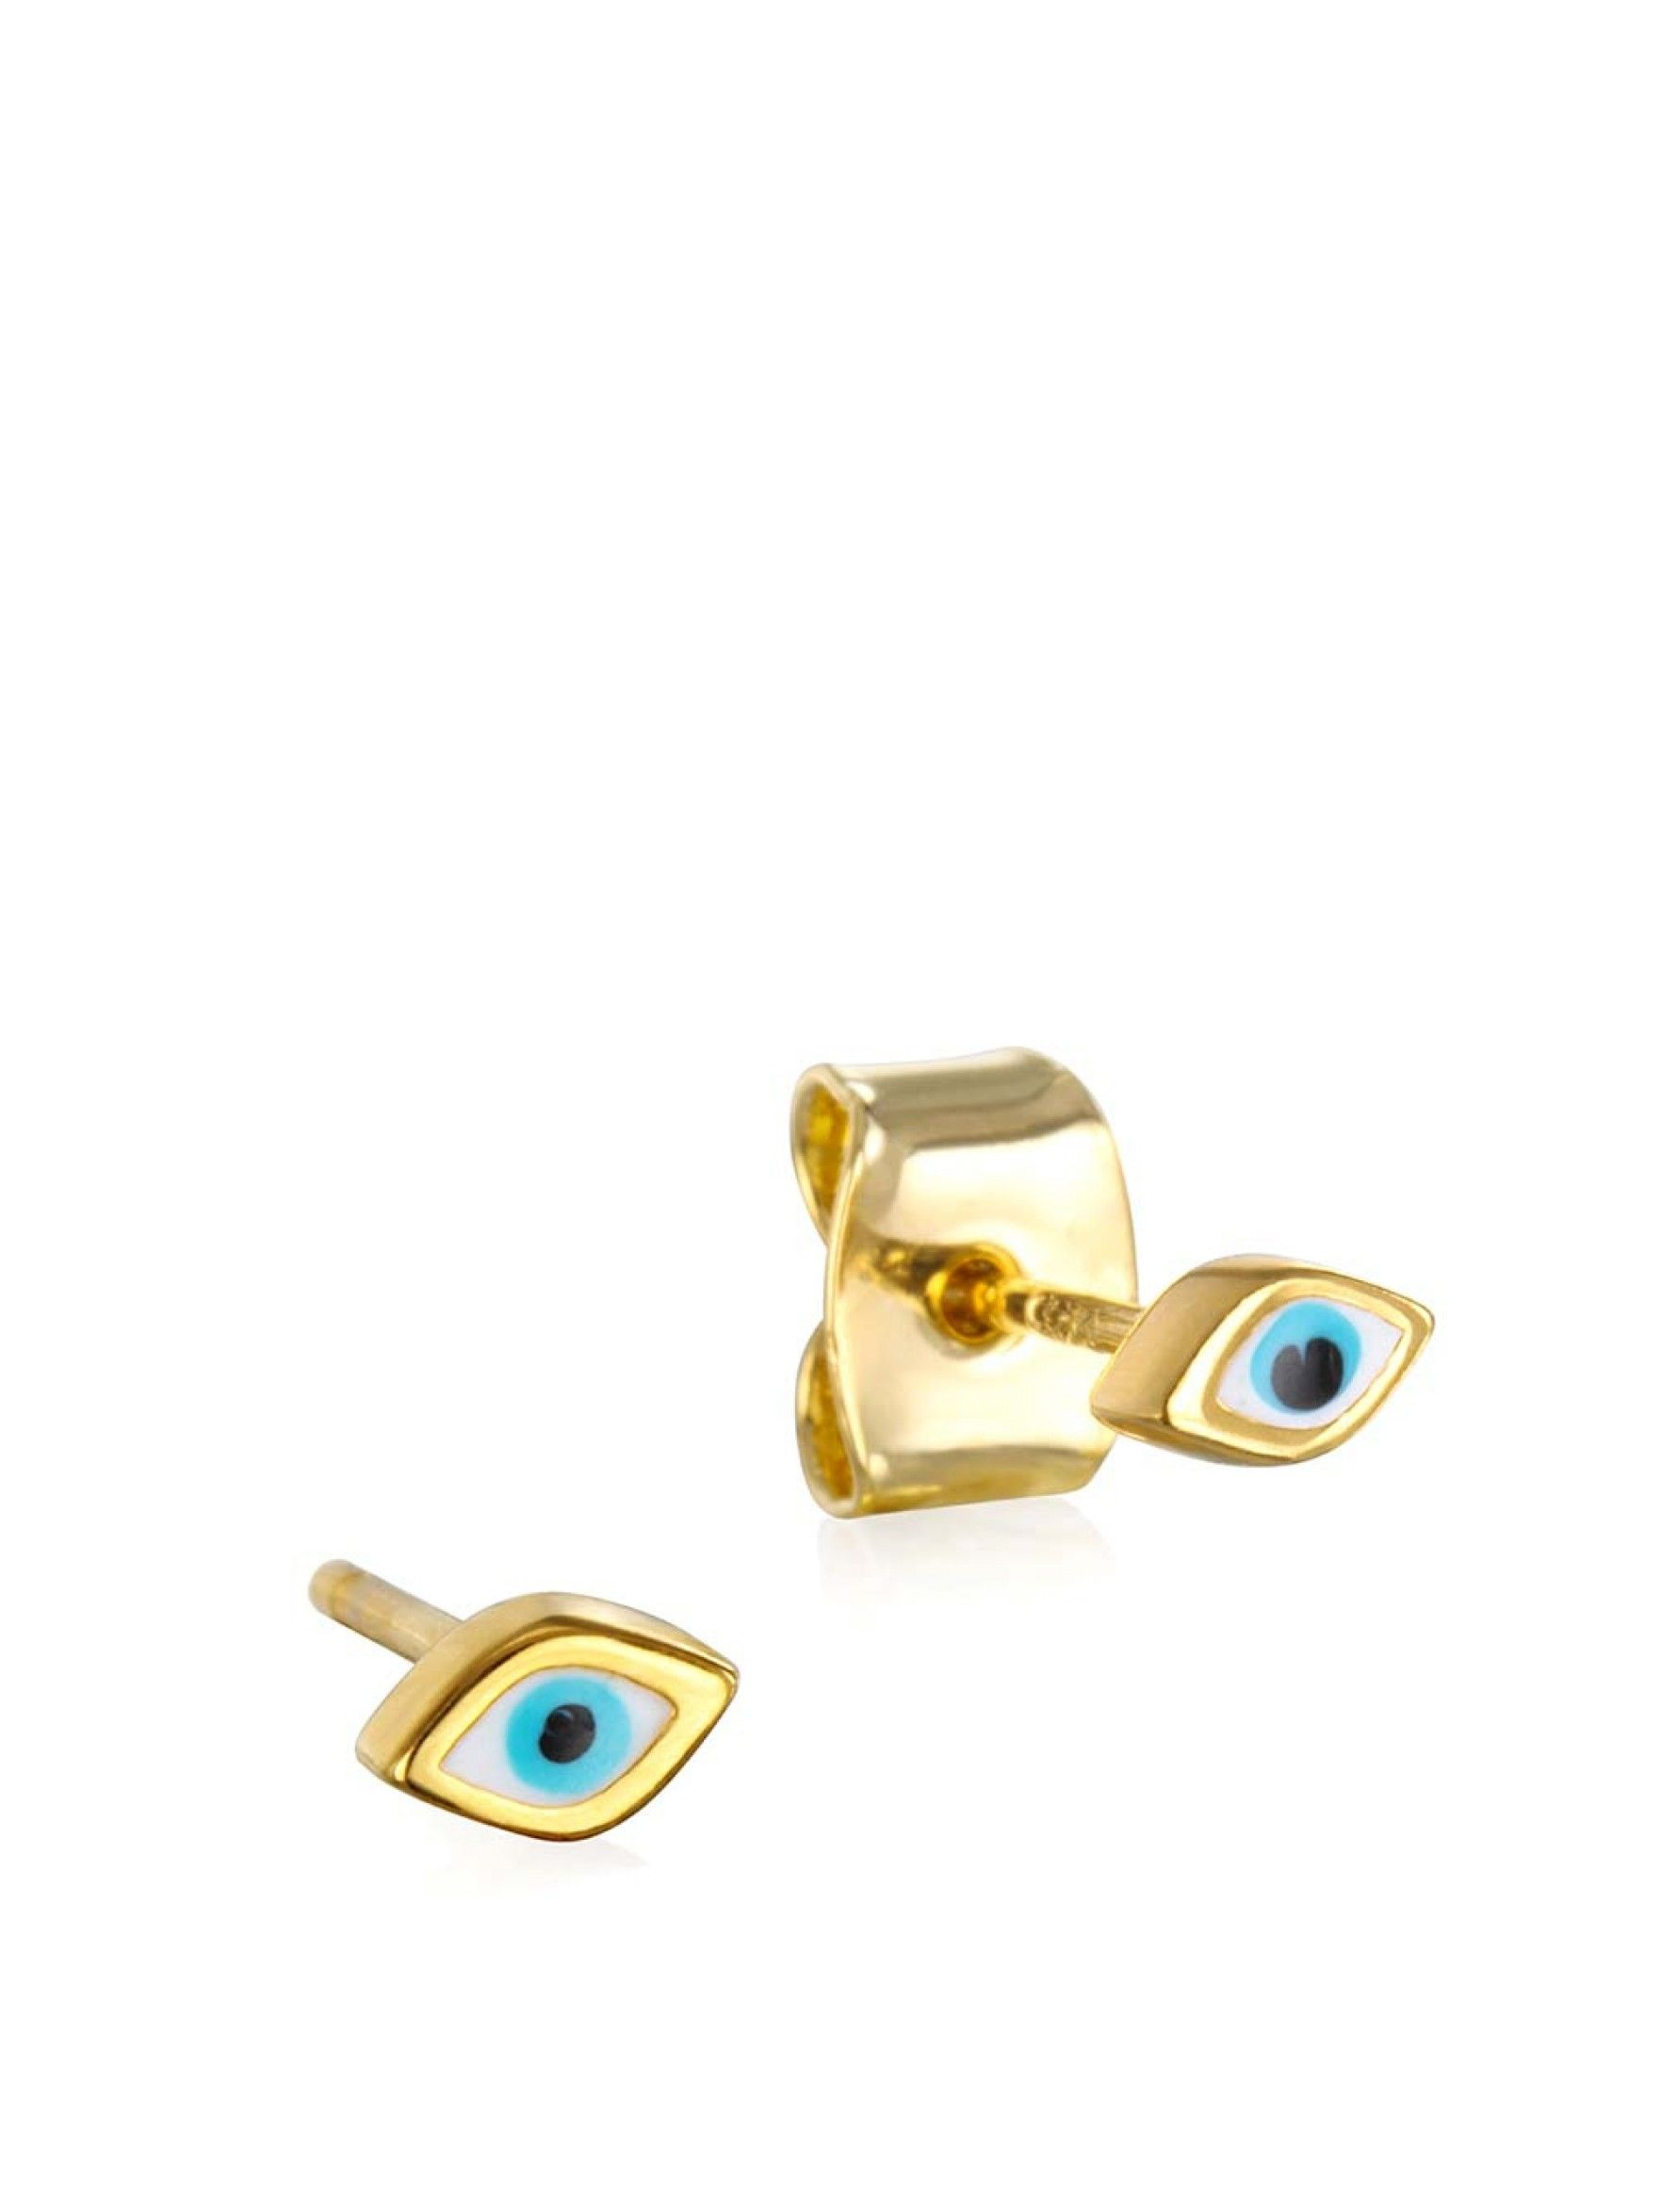 Tai Jewelry	Earrings	Enamel Tear Eye Earrings